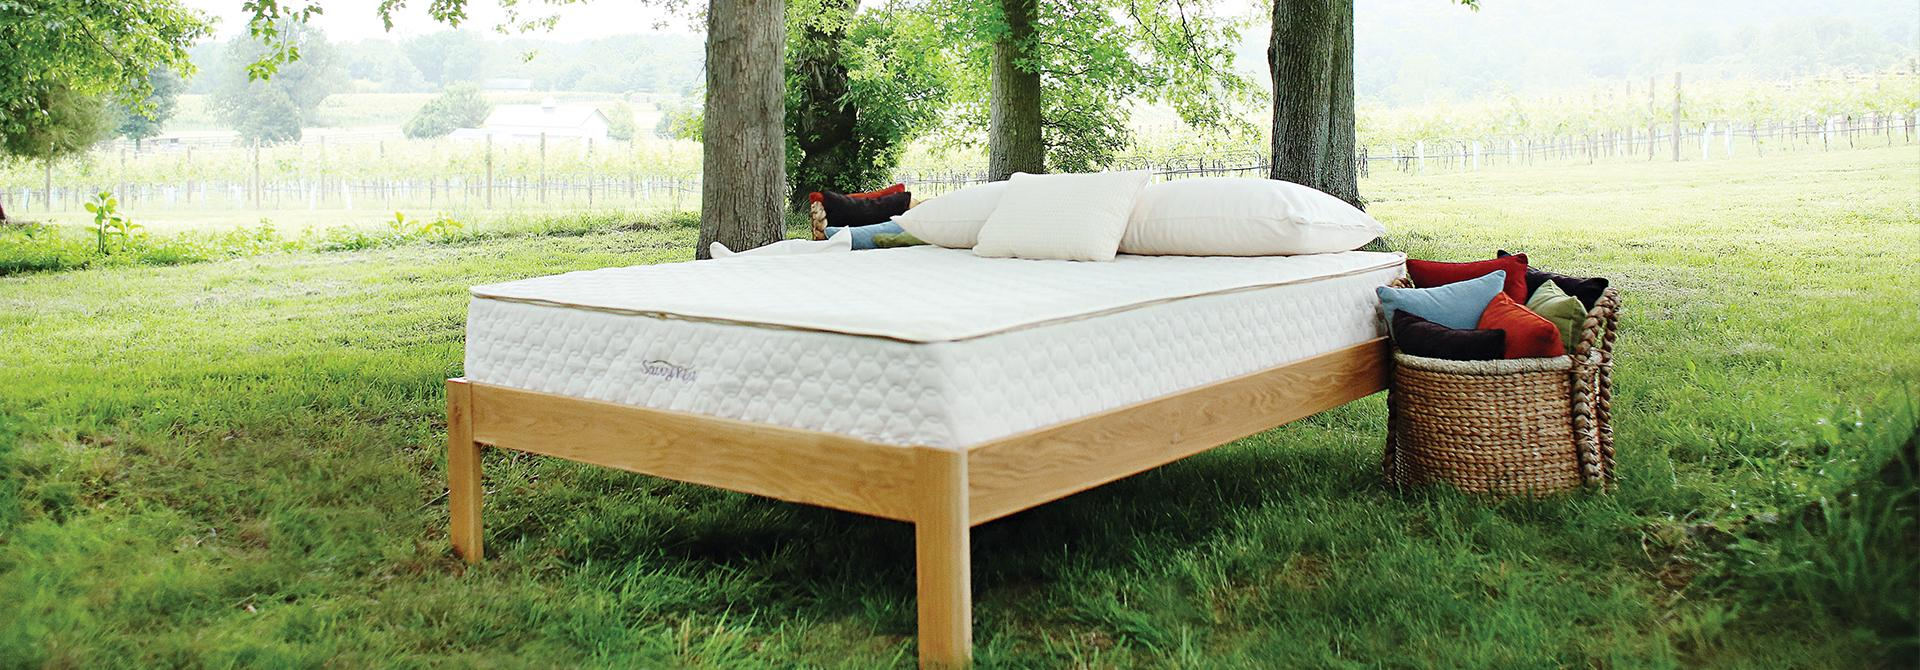 To Select The Finest Organic Futon Mattress The Best Organic Mattress Brands And Buying Guide For 2019 - SnoreMagazine